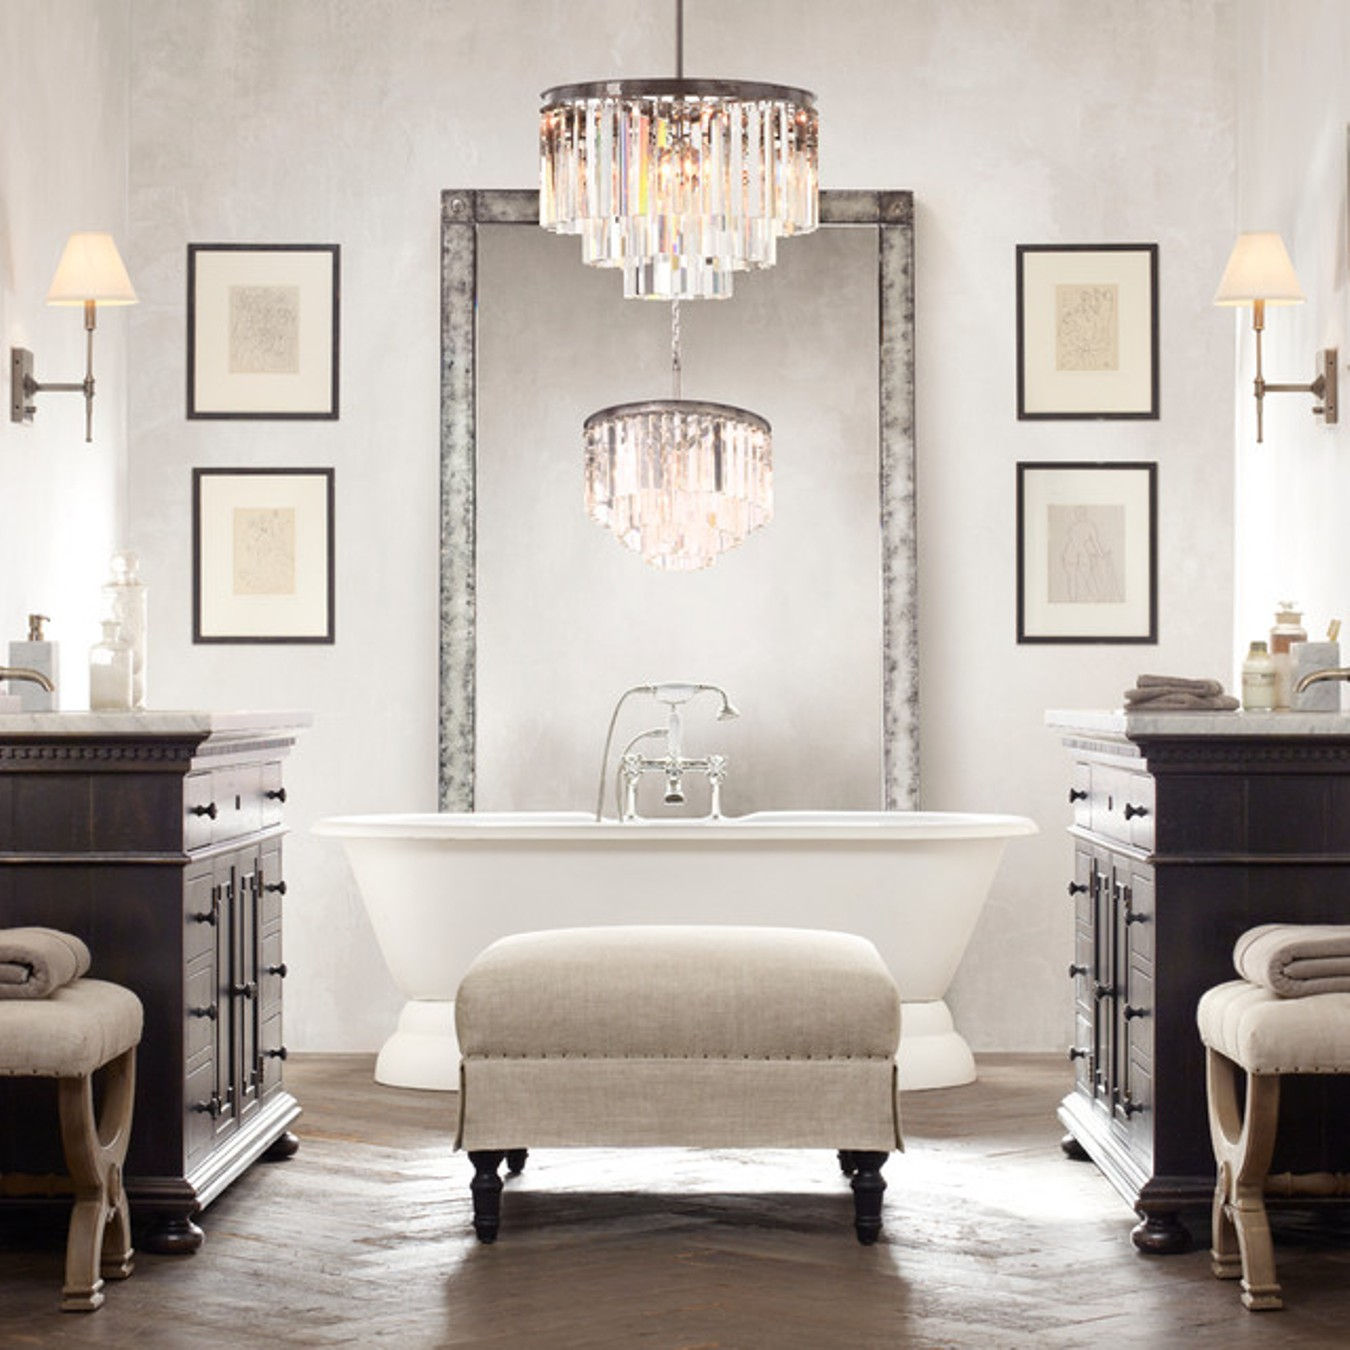 INSPIRE: Bathroom Lighting | Dwell with Dignity